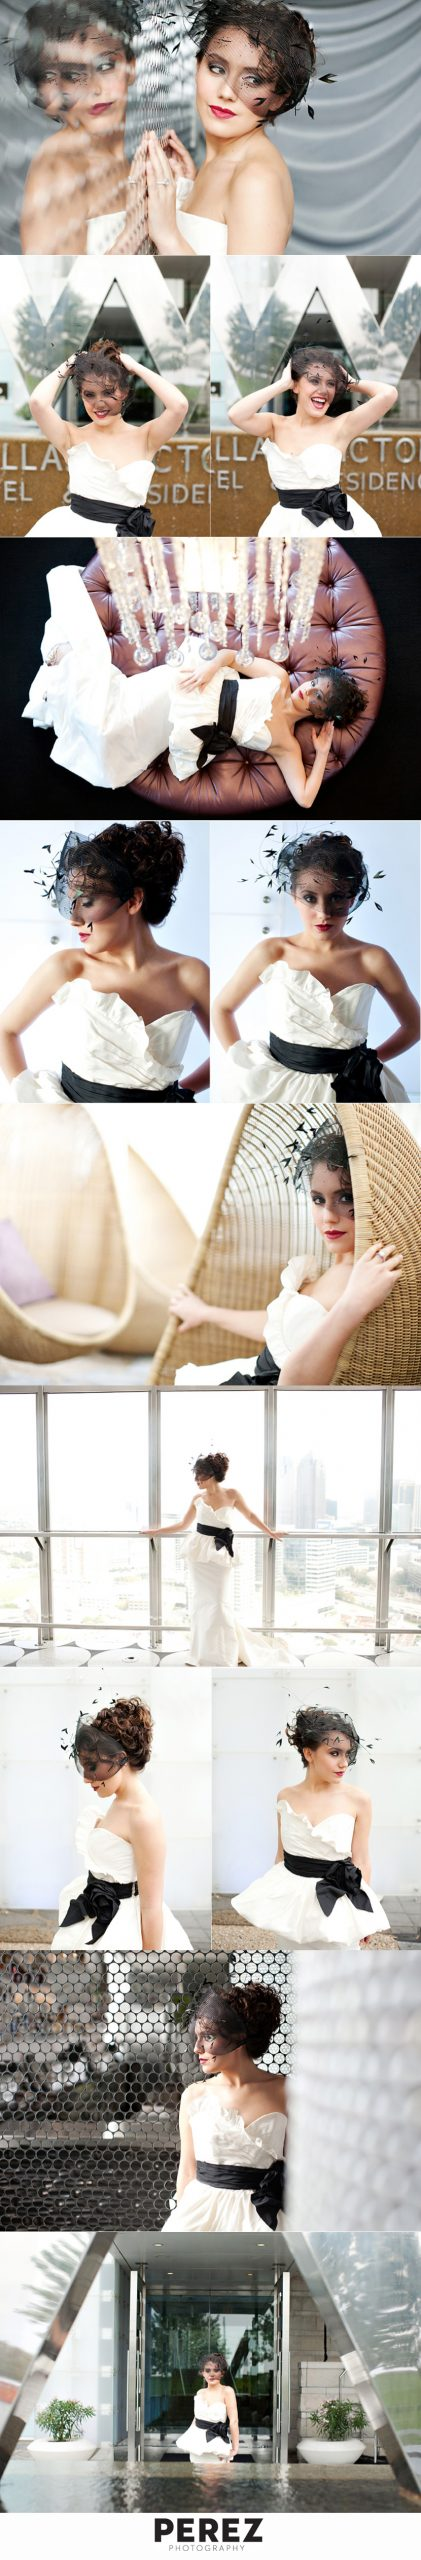 W Hotel Dallas bridal shoot from Perez Photography